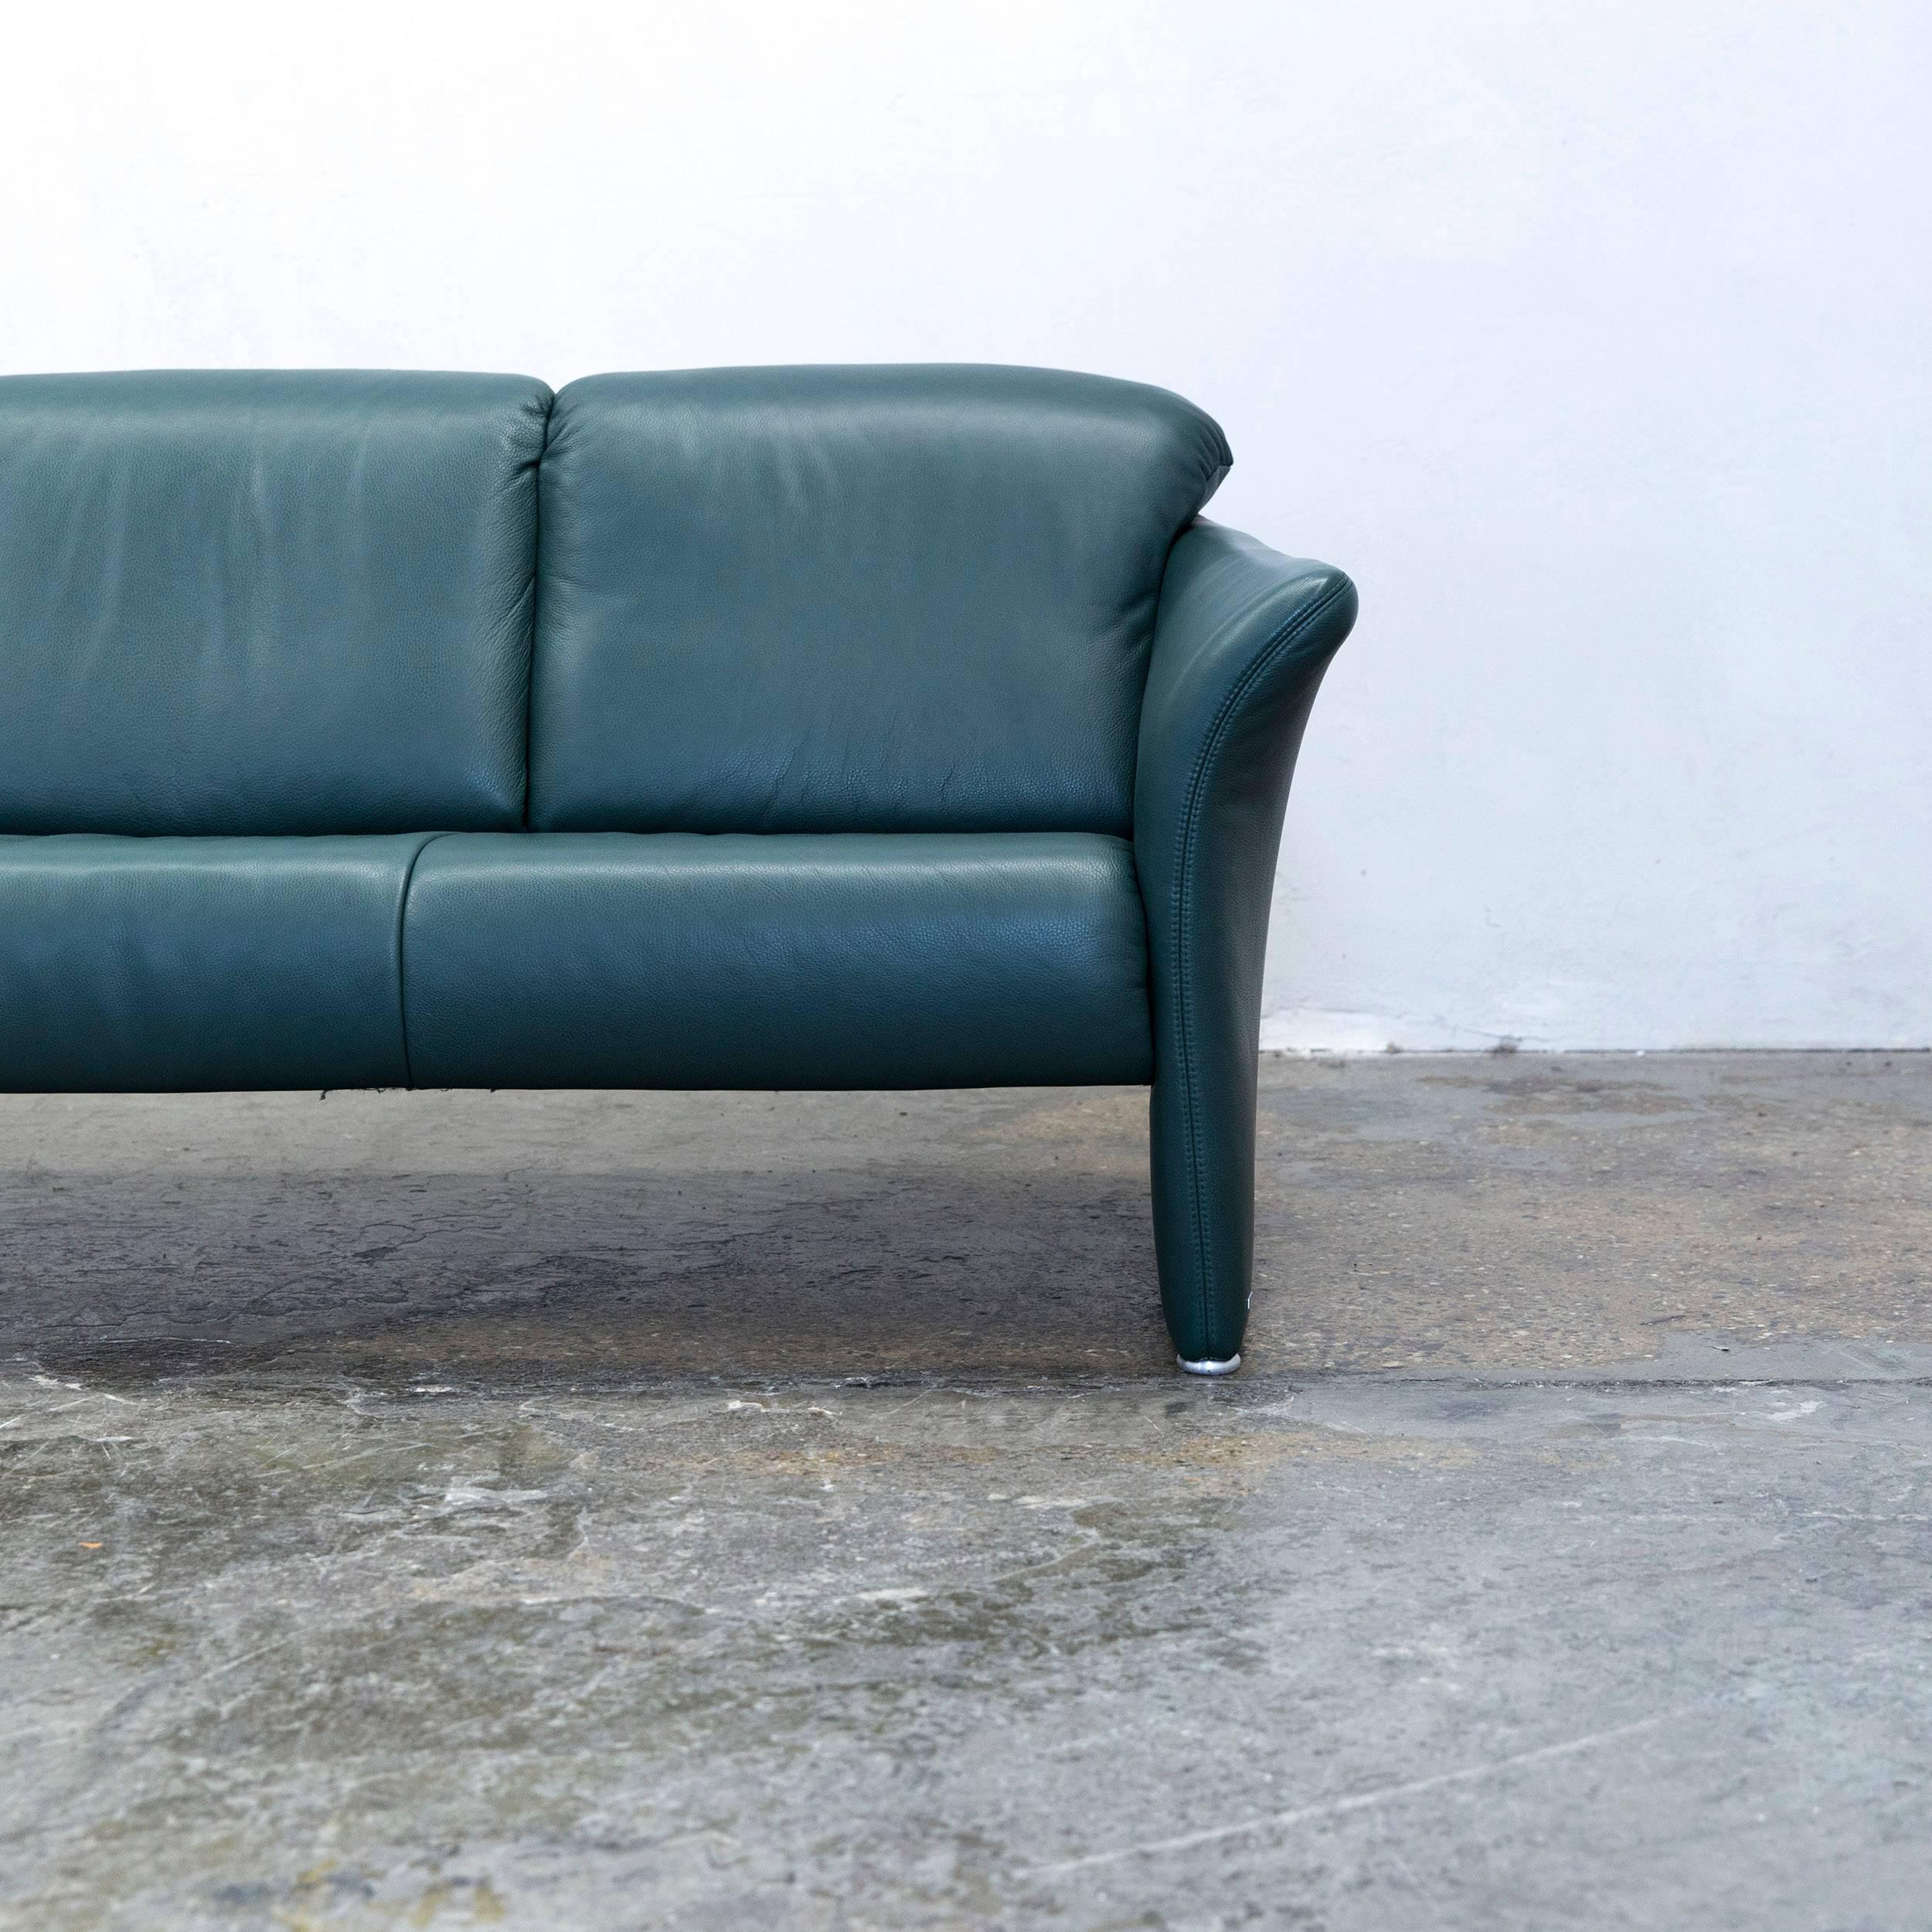 German Koinor Designer Sofa Leather Green Three Seat Couch Modern For Sale